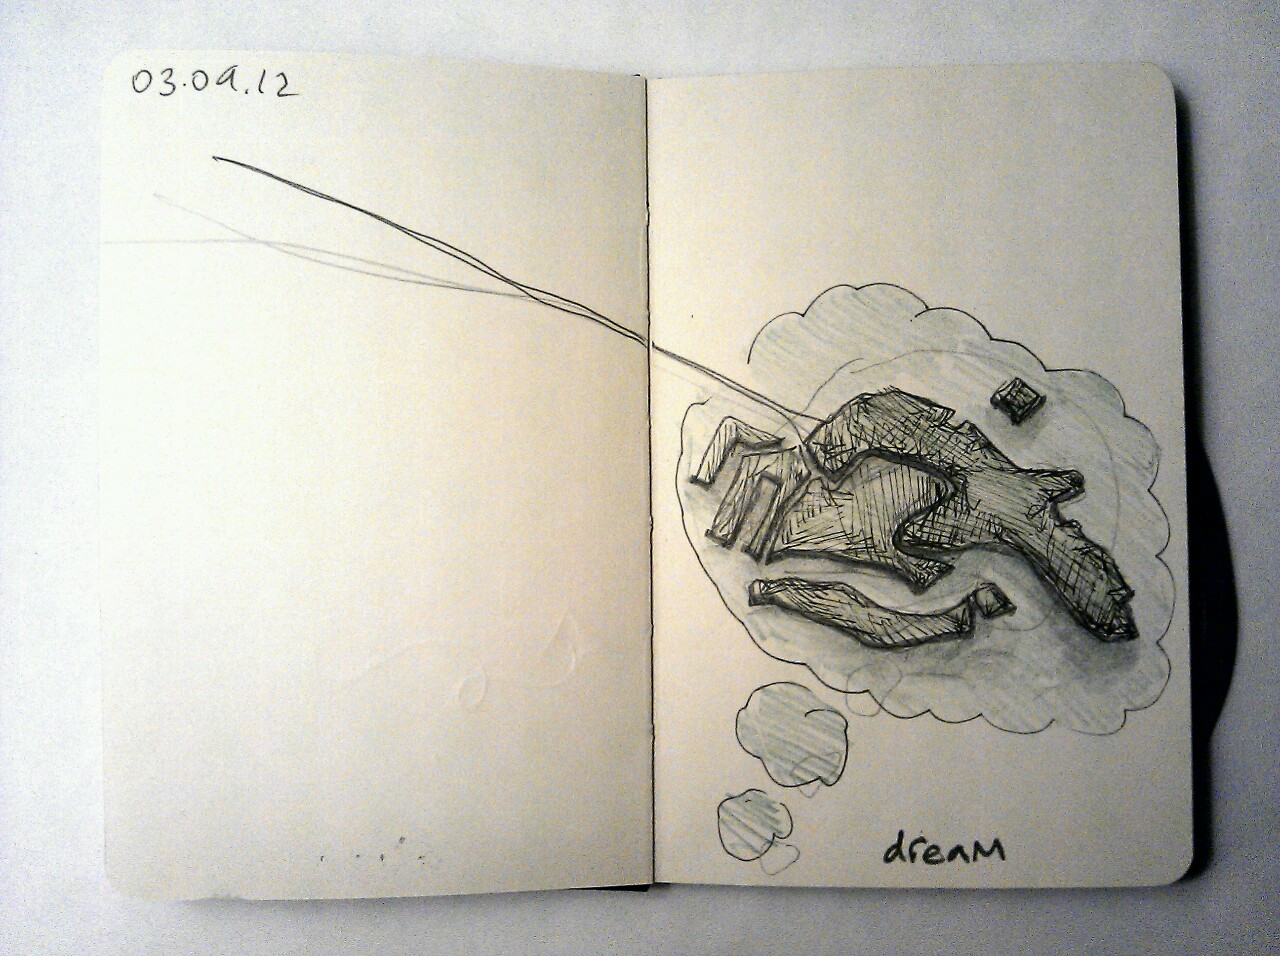 365 drawings later … day 216 … dream